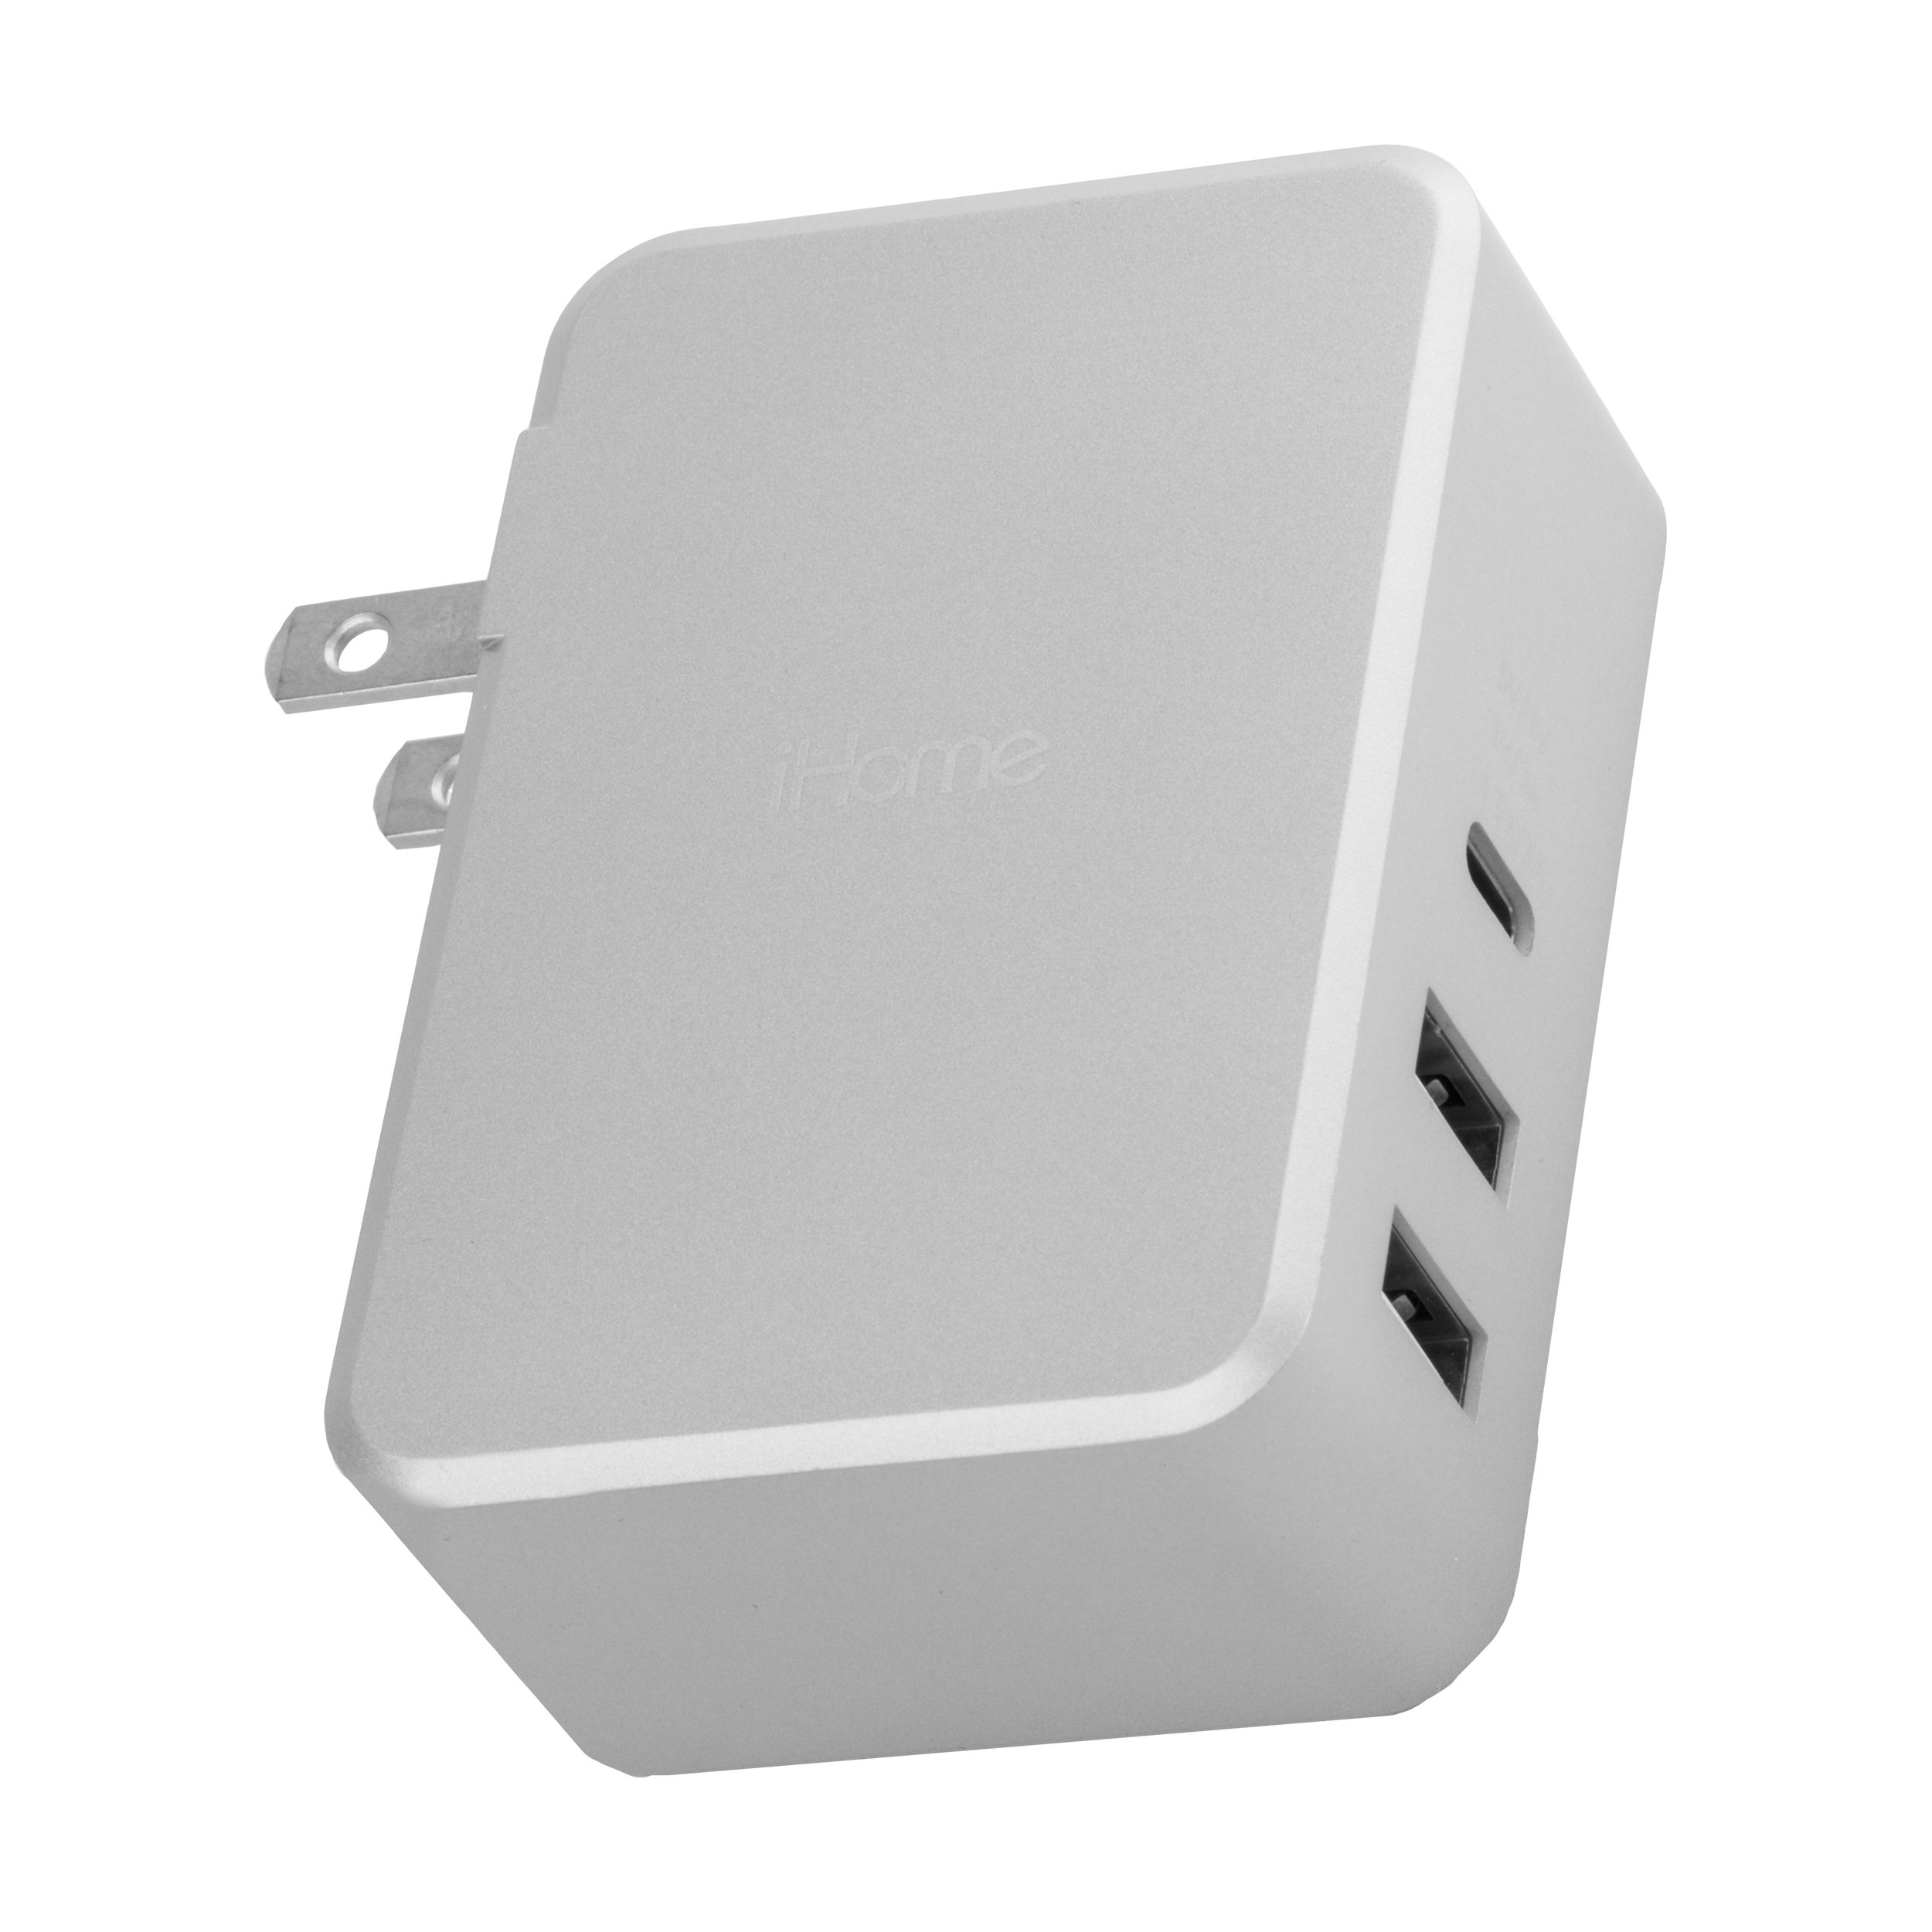 iHome USB Type-C 3-Port 45W Rapid Portable Wall Charger. Power Delivery Port for Apple Macbook, iPhone X/8/8 Plus, Nintendo Switch & More. Includes 6Ft USB-C Braided Cable -Silver